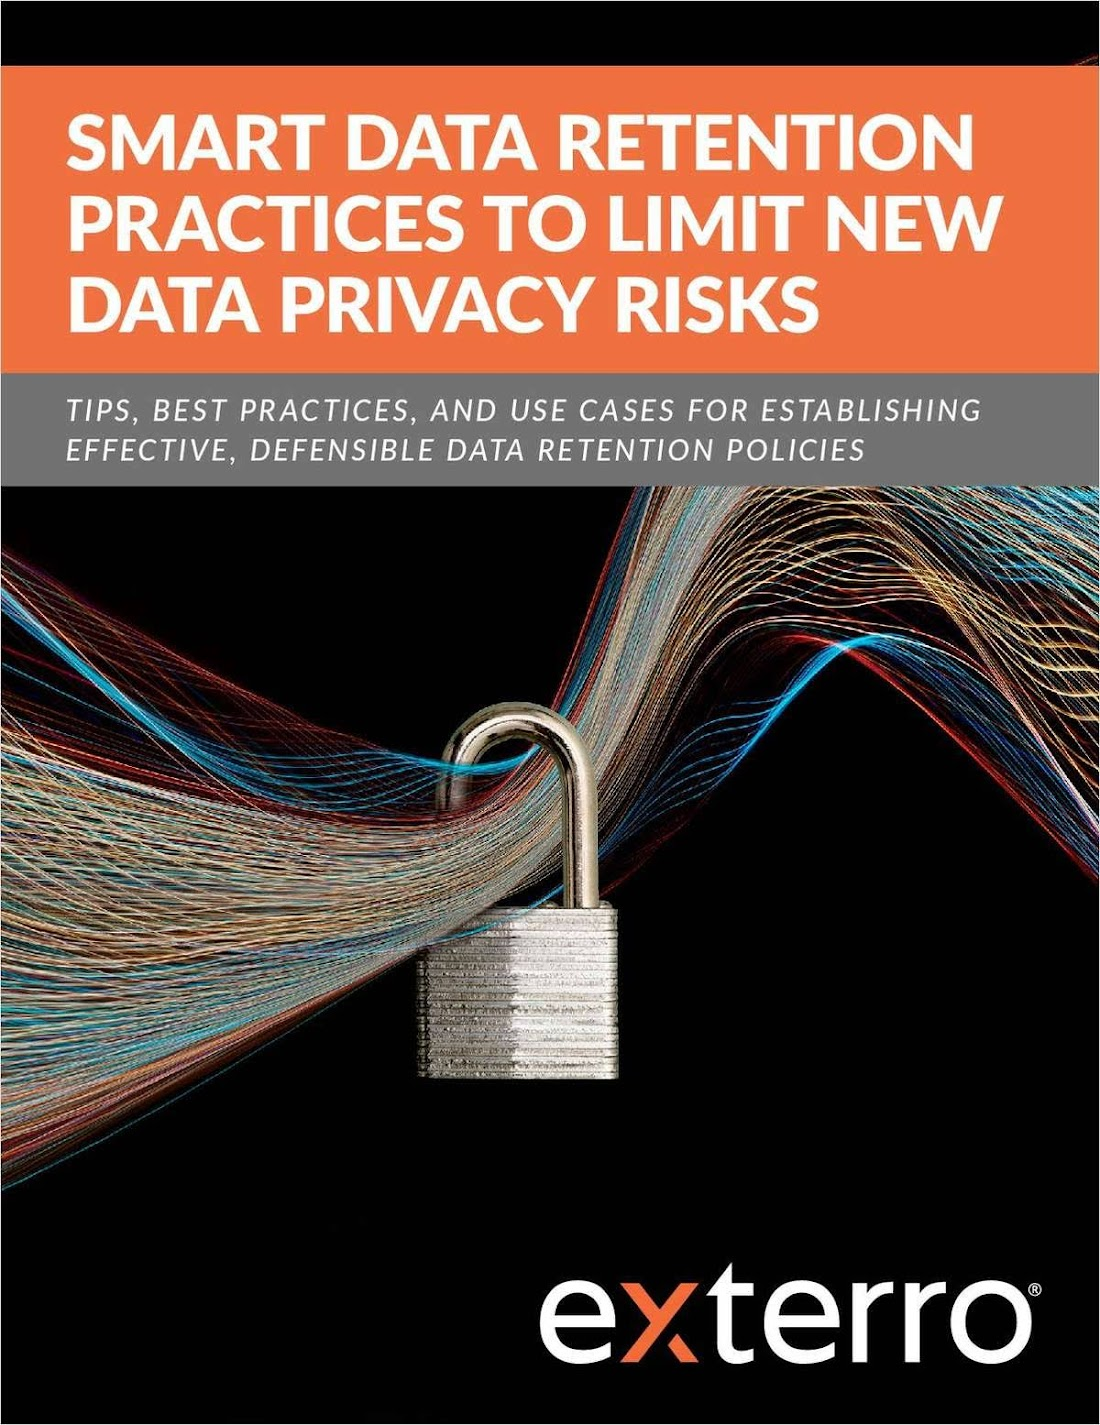 Smart Data Retention Policies Practices, Tips, and Use-Cases to Limit New Data Privacy Risks